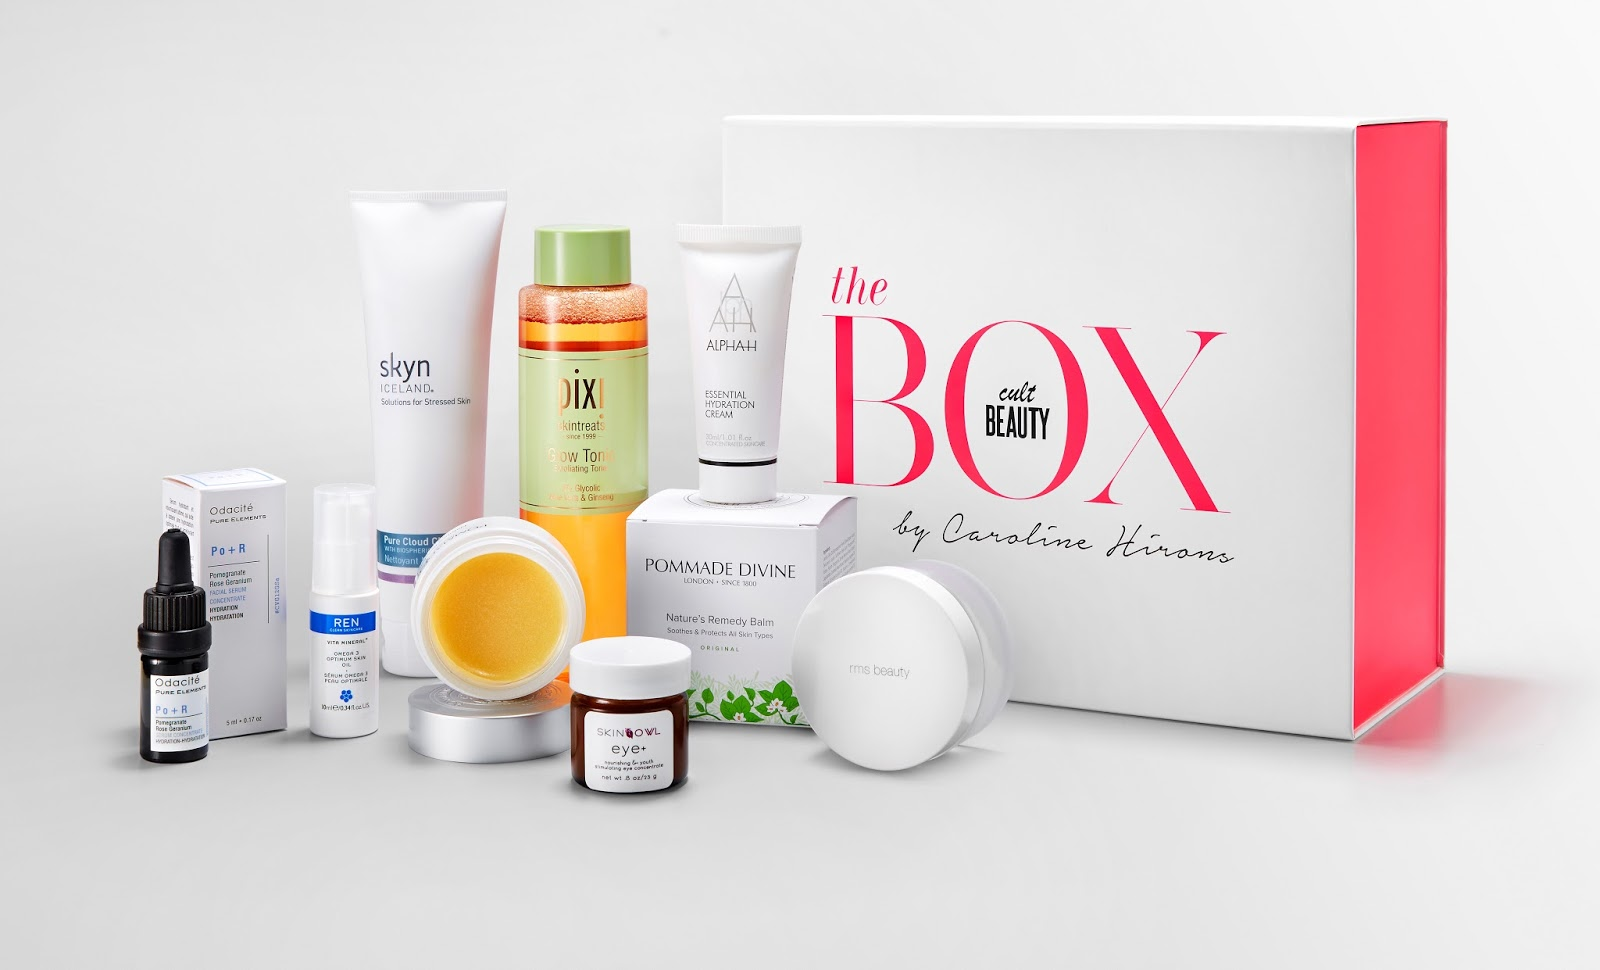 IT'S HERE! The Cult Beauty Box Full Reveal.